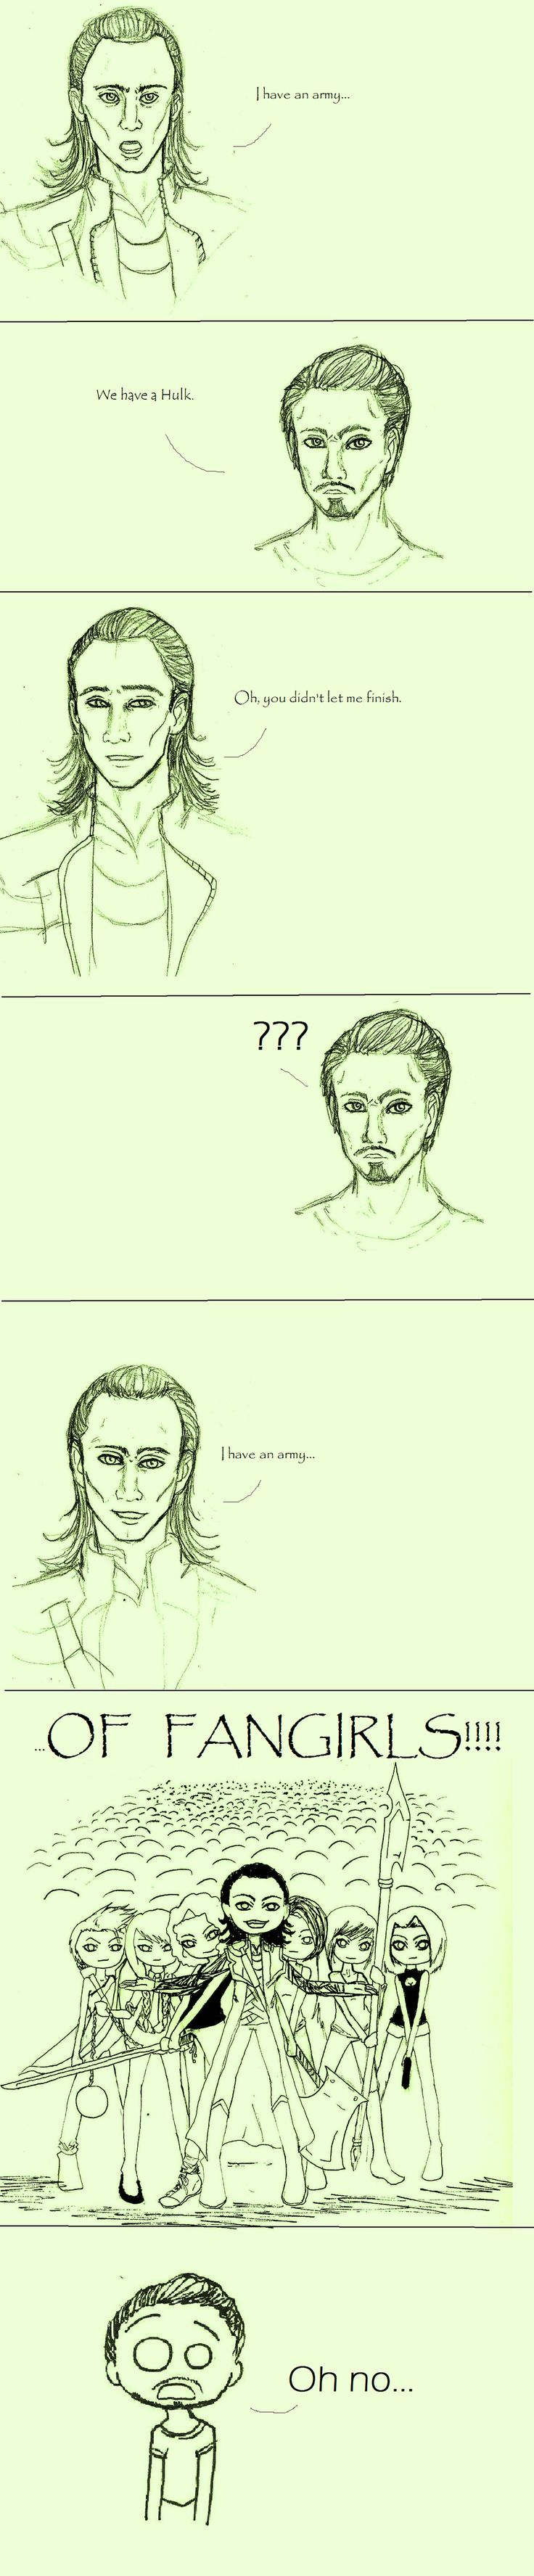 I don't understand the fan girl-ing over Loki, but I found this funny anyway. Yes, Tony. I would run too.